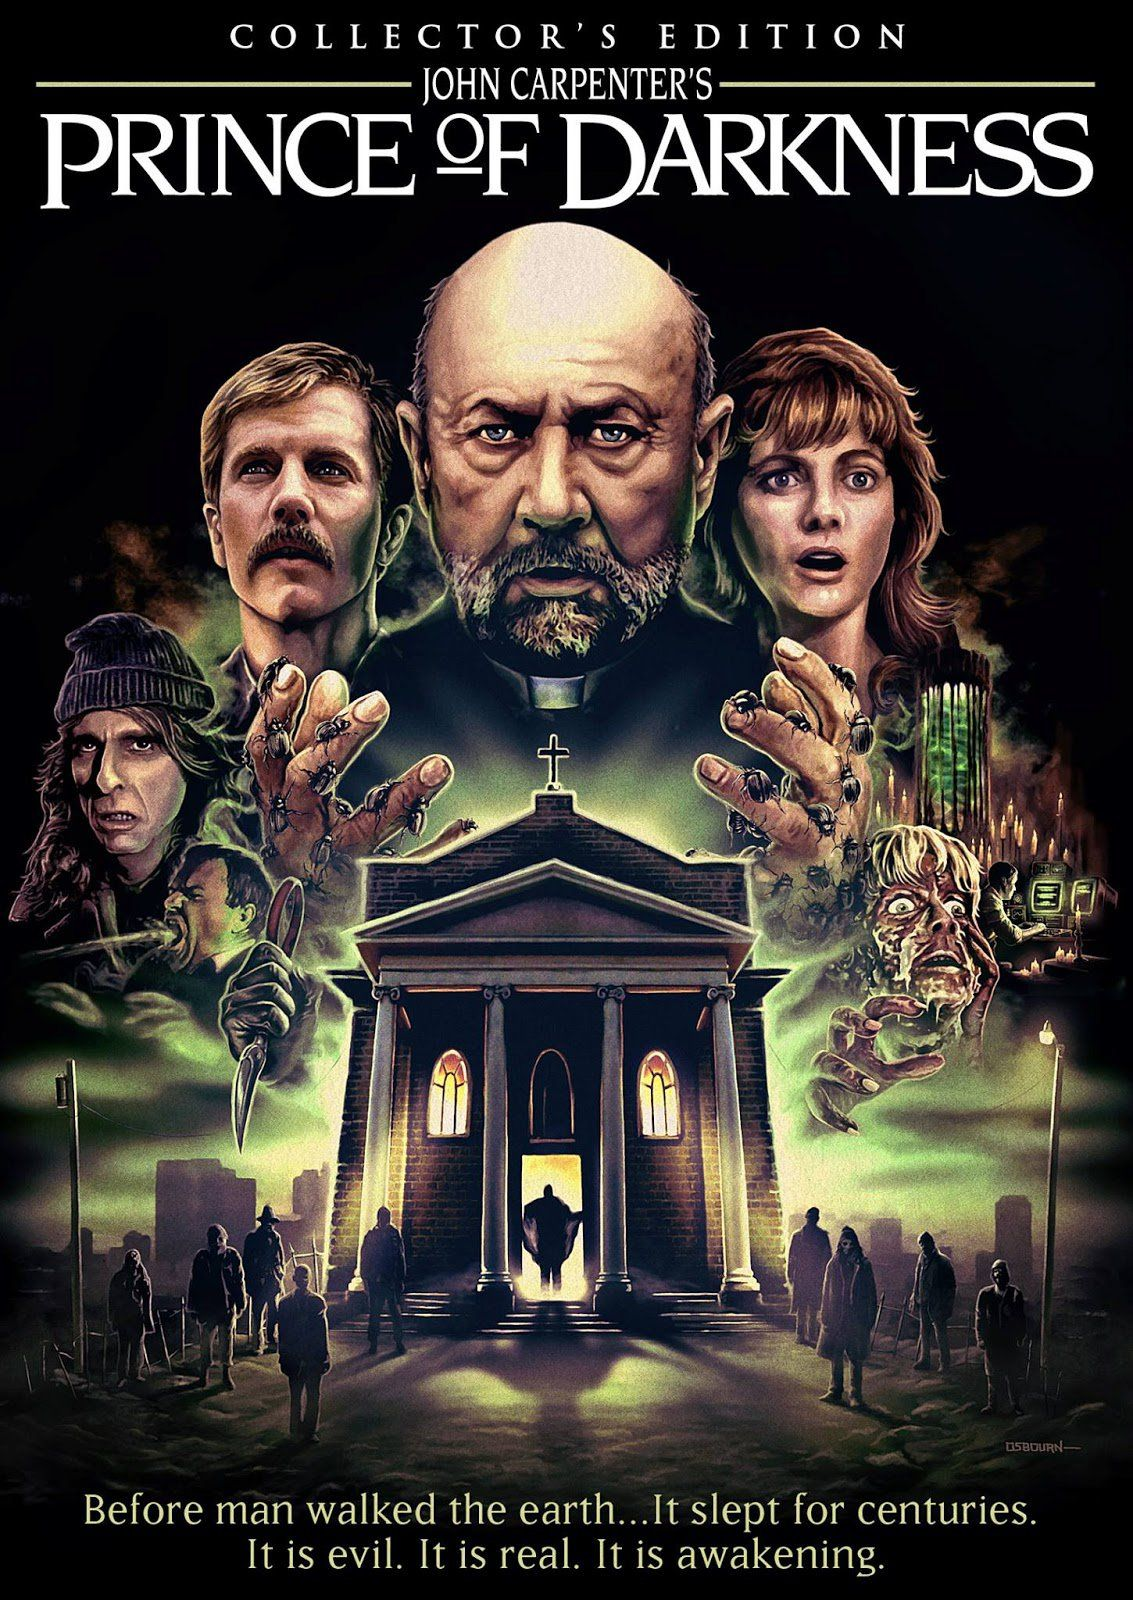 Prince of Darkness (1987) Movie Review in 2020 Prince of